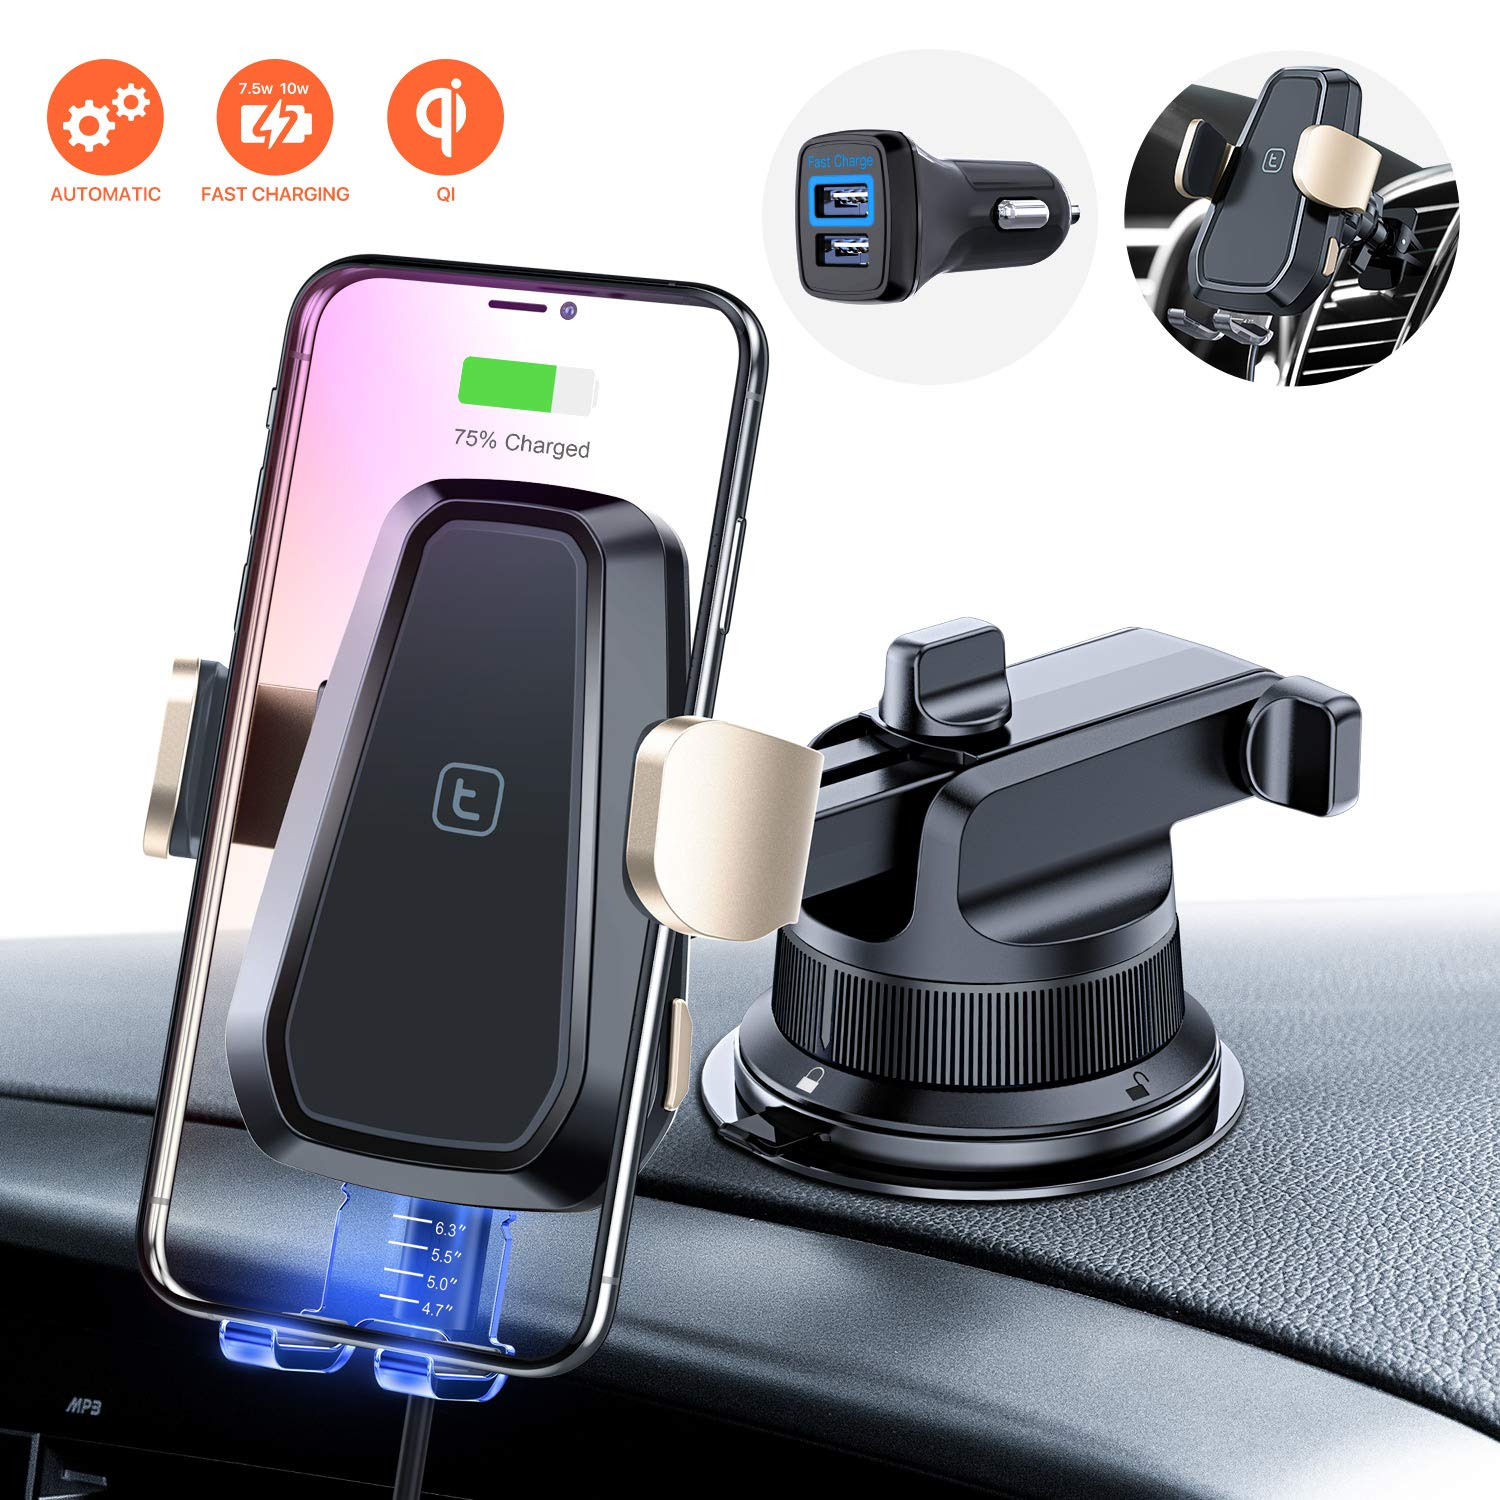 TORRAS Wireless Charger Car Mount Kit with QC 3.0 Charger, Windshield Dashboard and Air Vent Phone Holder, Qi Fast Charging for iPhone 11/11 Pro/ 11 Pro Max Xs Max XR X8, Samsung S10 S9 Note 10/10+ by TORRAS